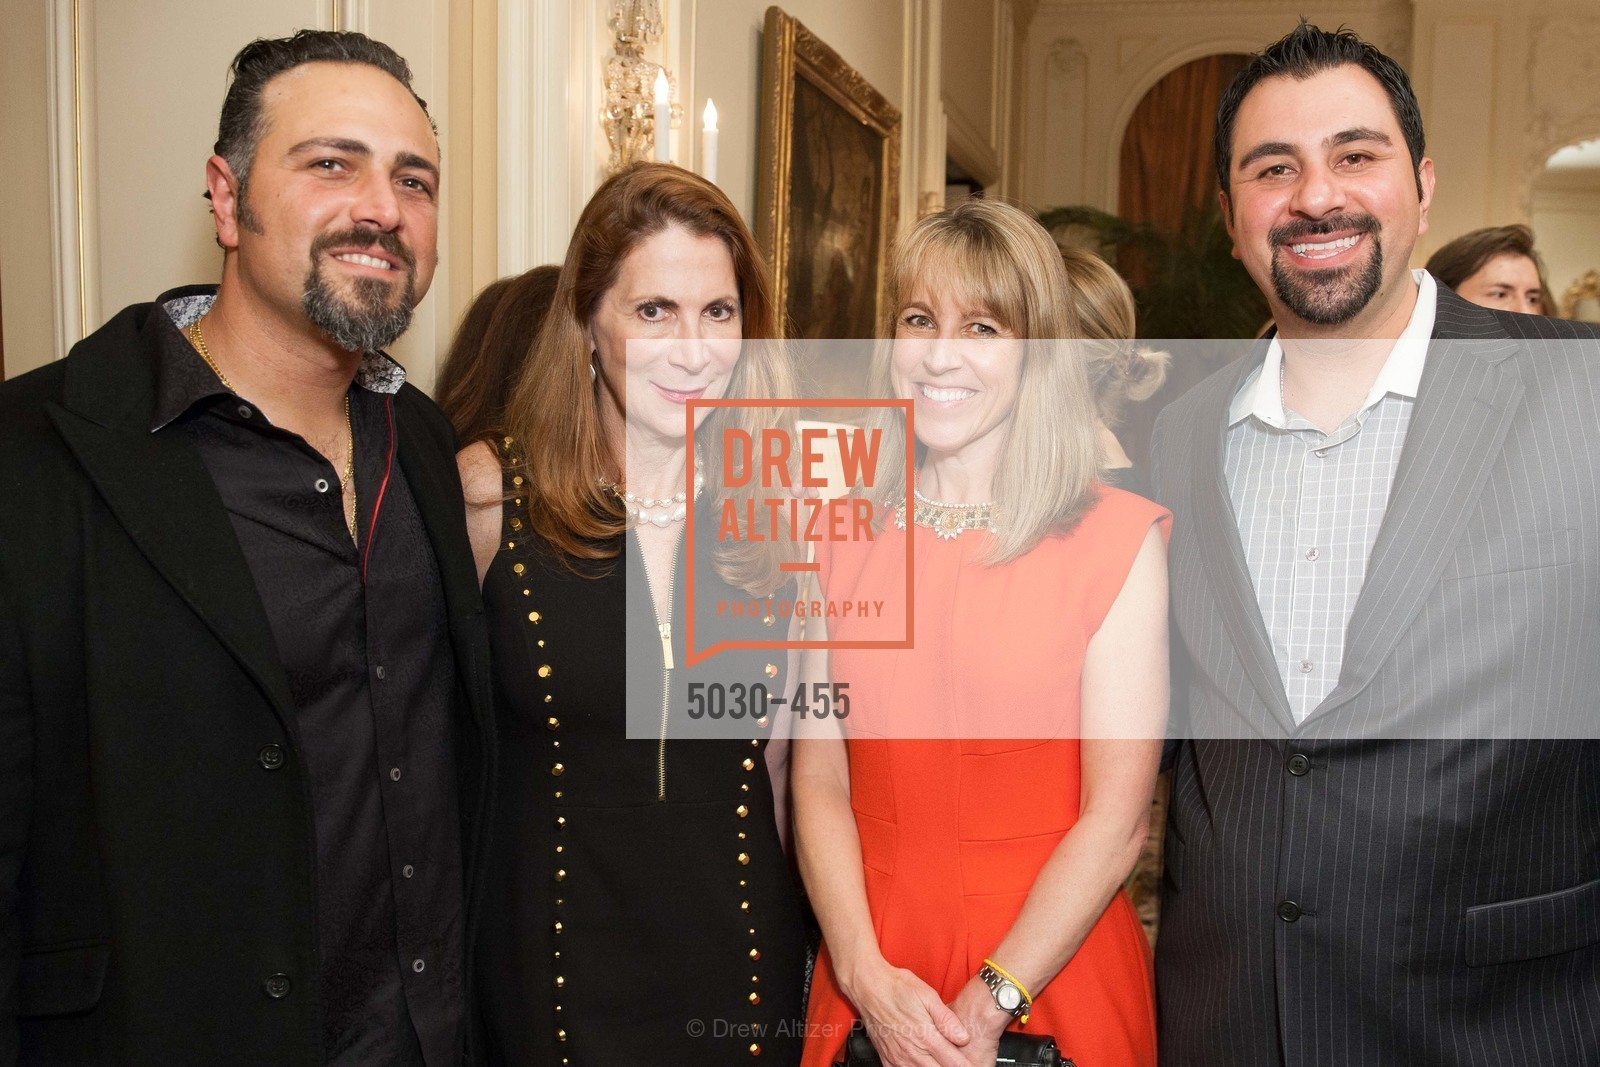 Elias Swakjian, Patricia Ferrin Loucks, Nora Feeley, Paul Abolmoluki, SAN FRANCISCO BALLET Grand Benefactors Reception, US. US, January 8th, 2014,Drew Altizer, Drew Altizer Photography, full-service agency, private events, San Francisco photographer, photographer california